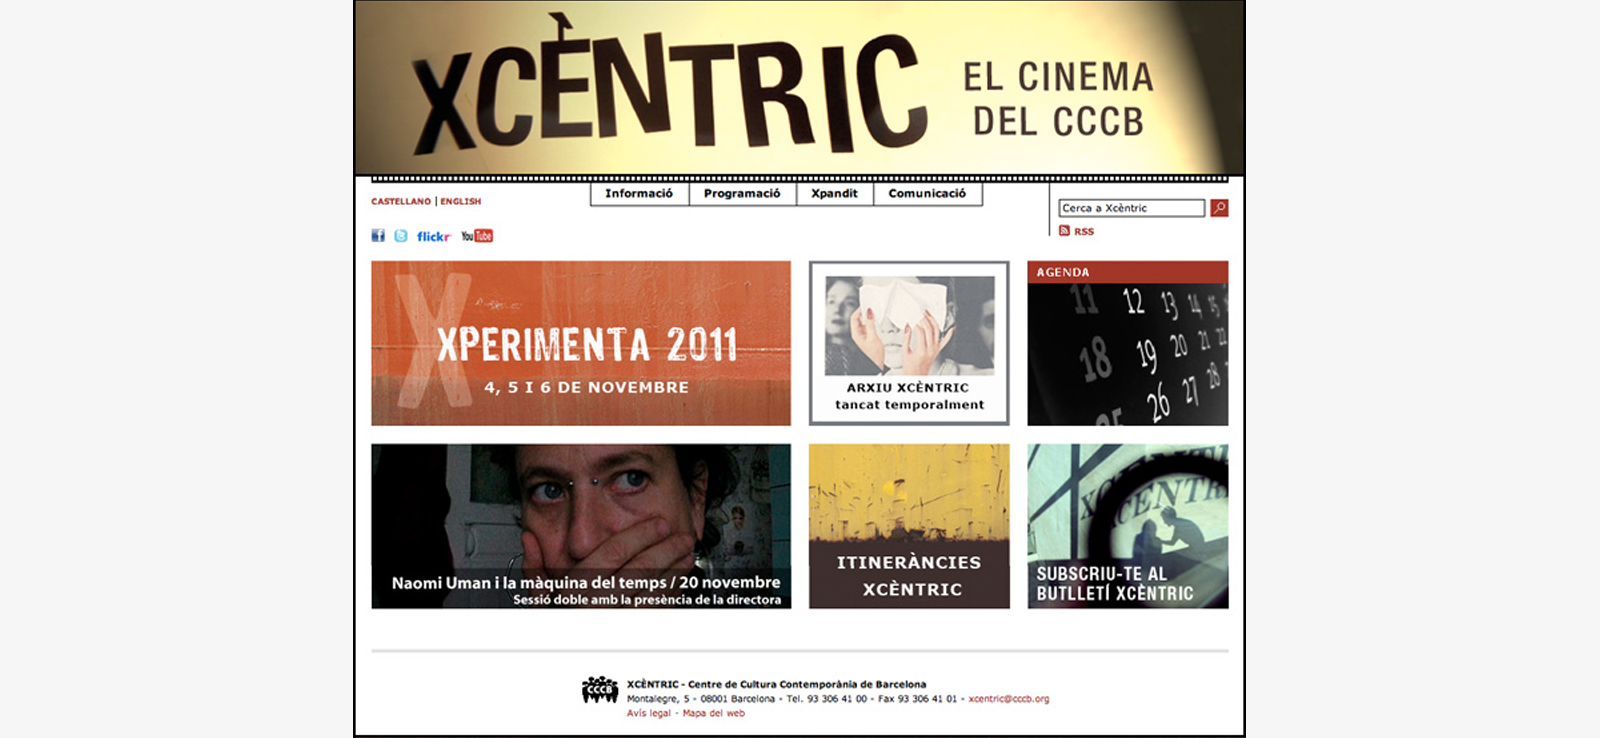 Antoni-Pinent-curator-Cinema-Invisible-Xcentric's-Section-cccb-barcelona-frame-website